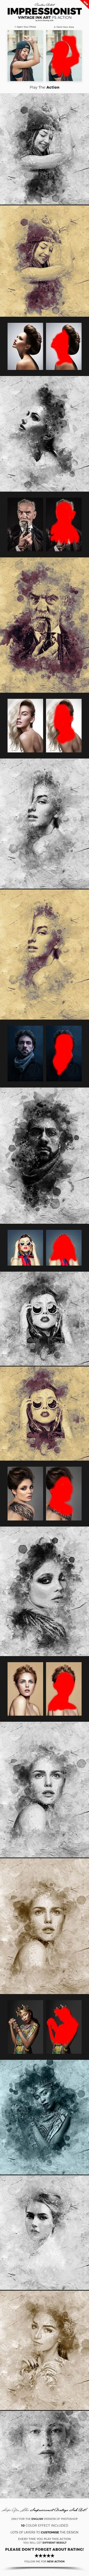 Impressionist Vintage Ink Art Photoshop Action - #Photo #Effects #Actions